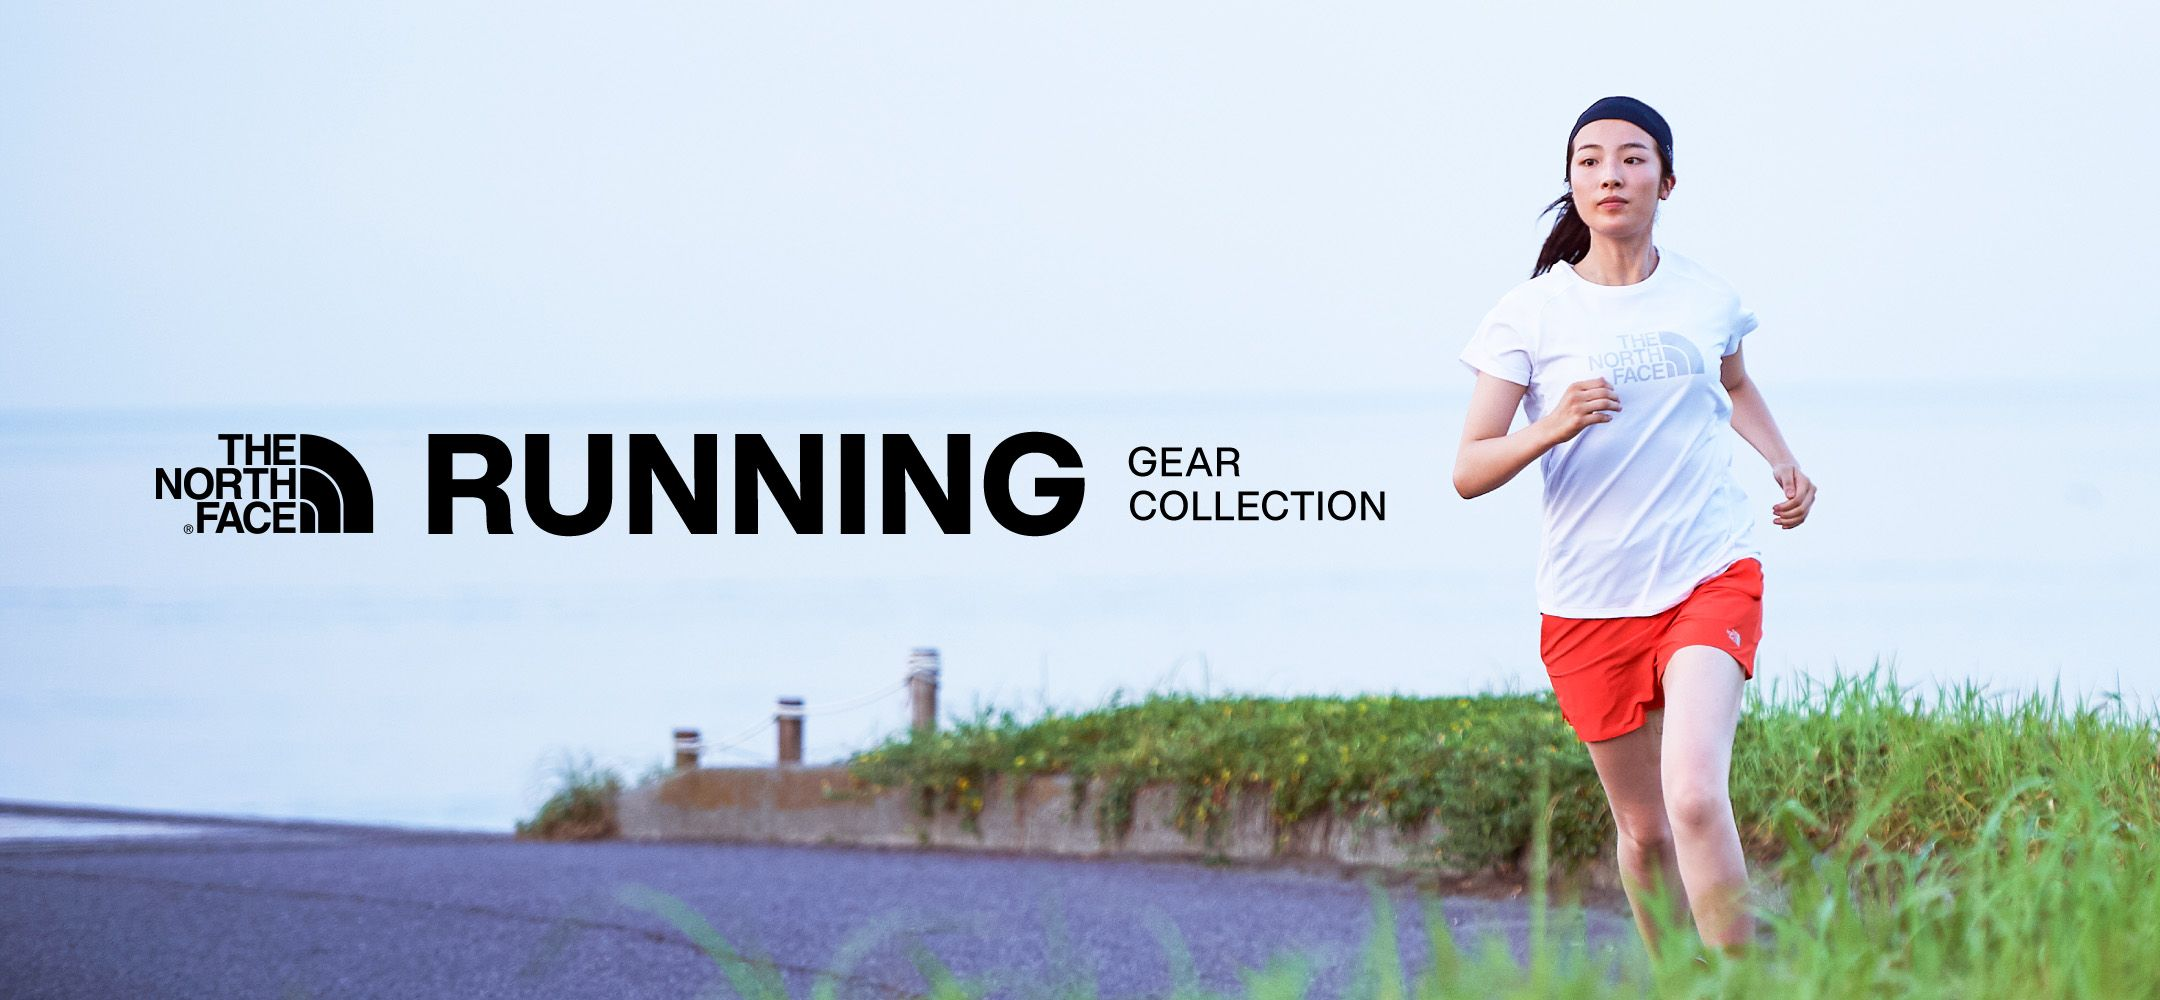 THE NORTH FACE RUNNING GEAR